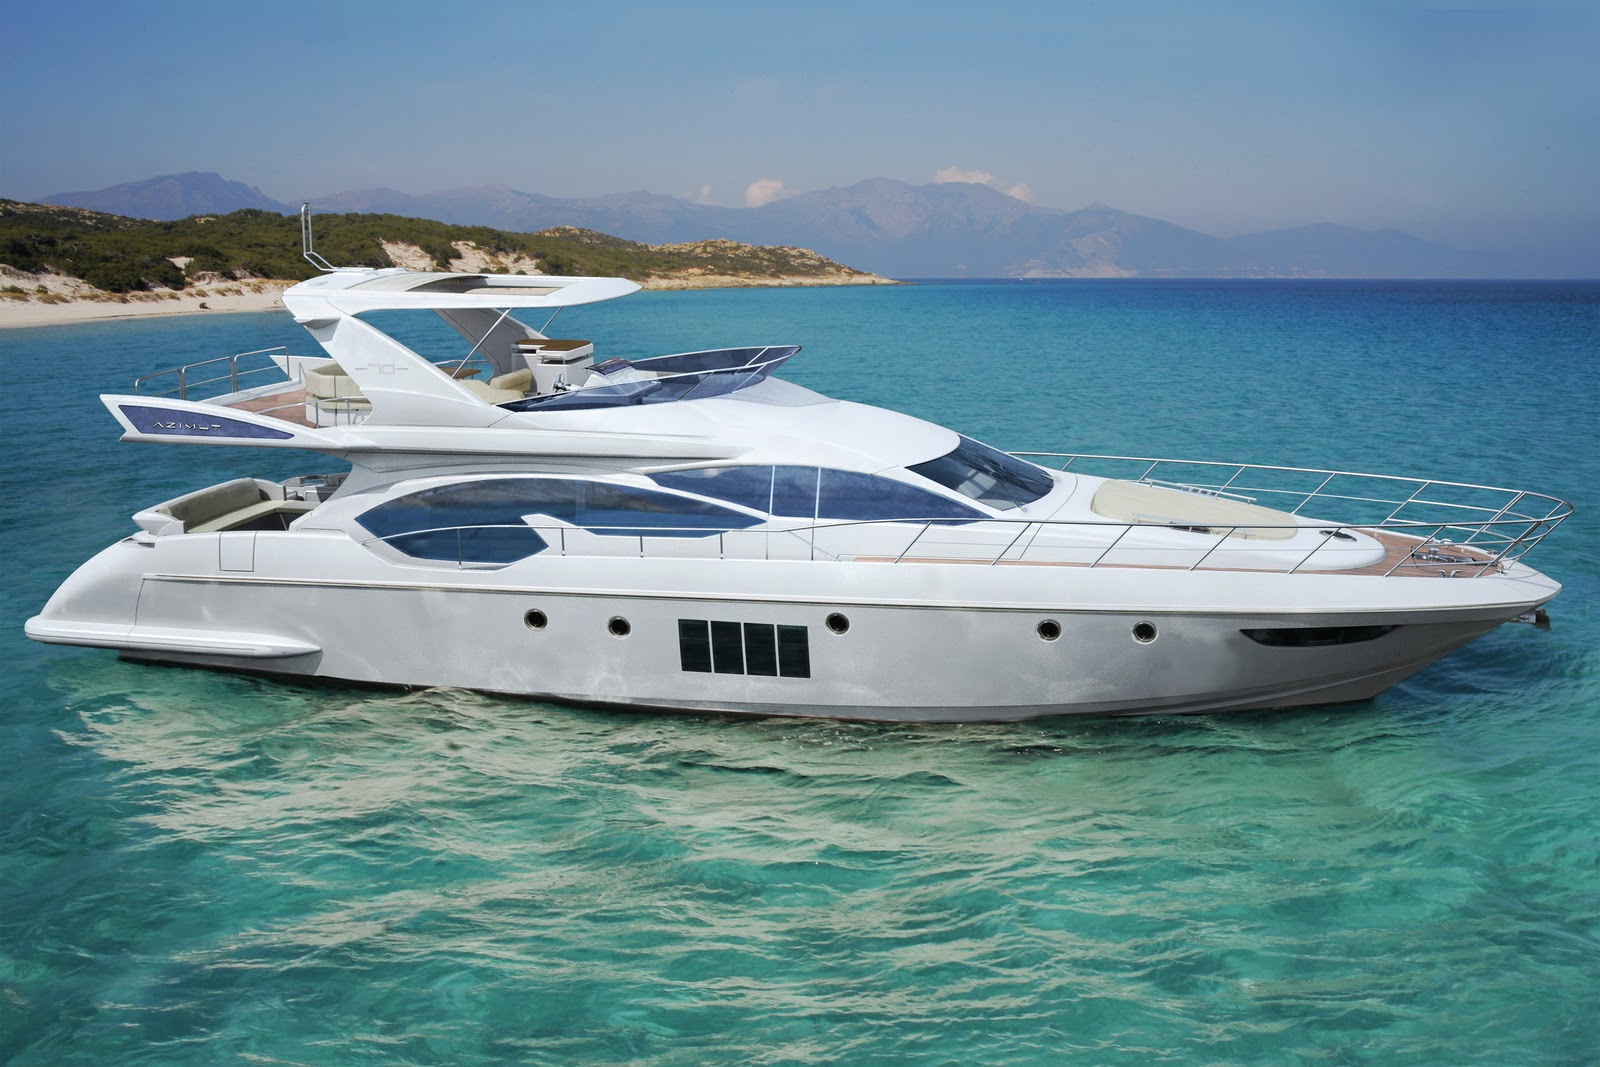 Luxury Yachts - Bellisima